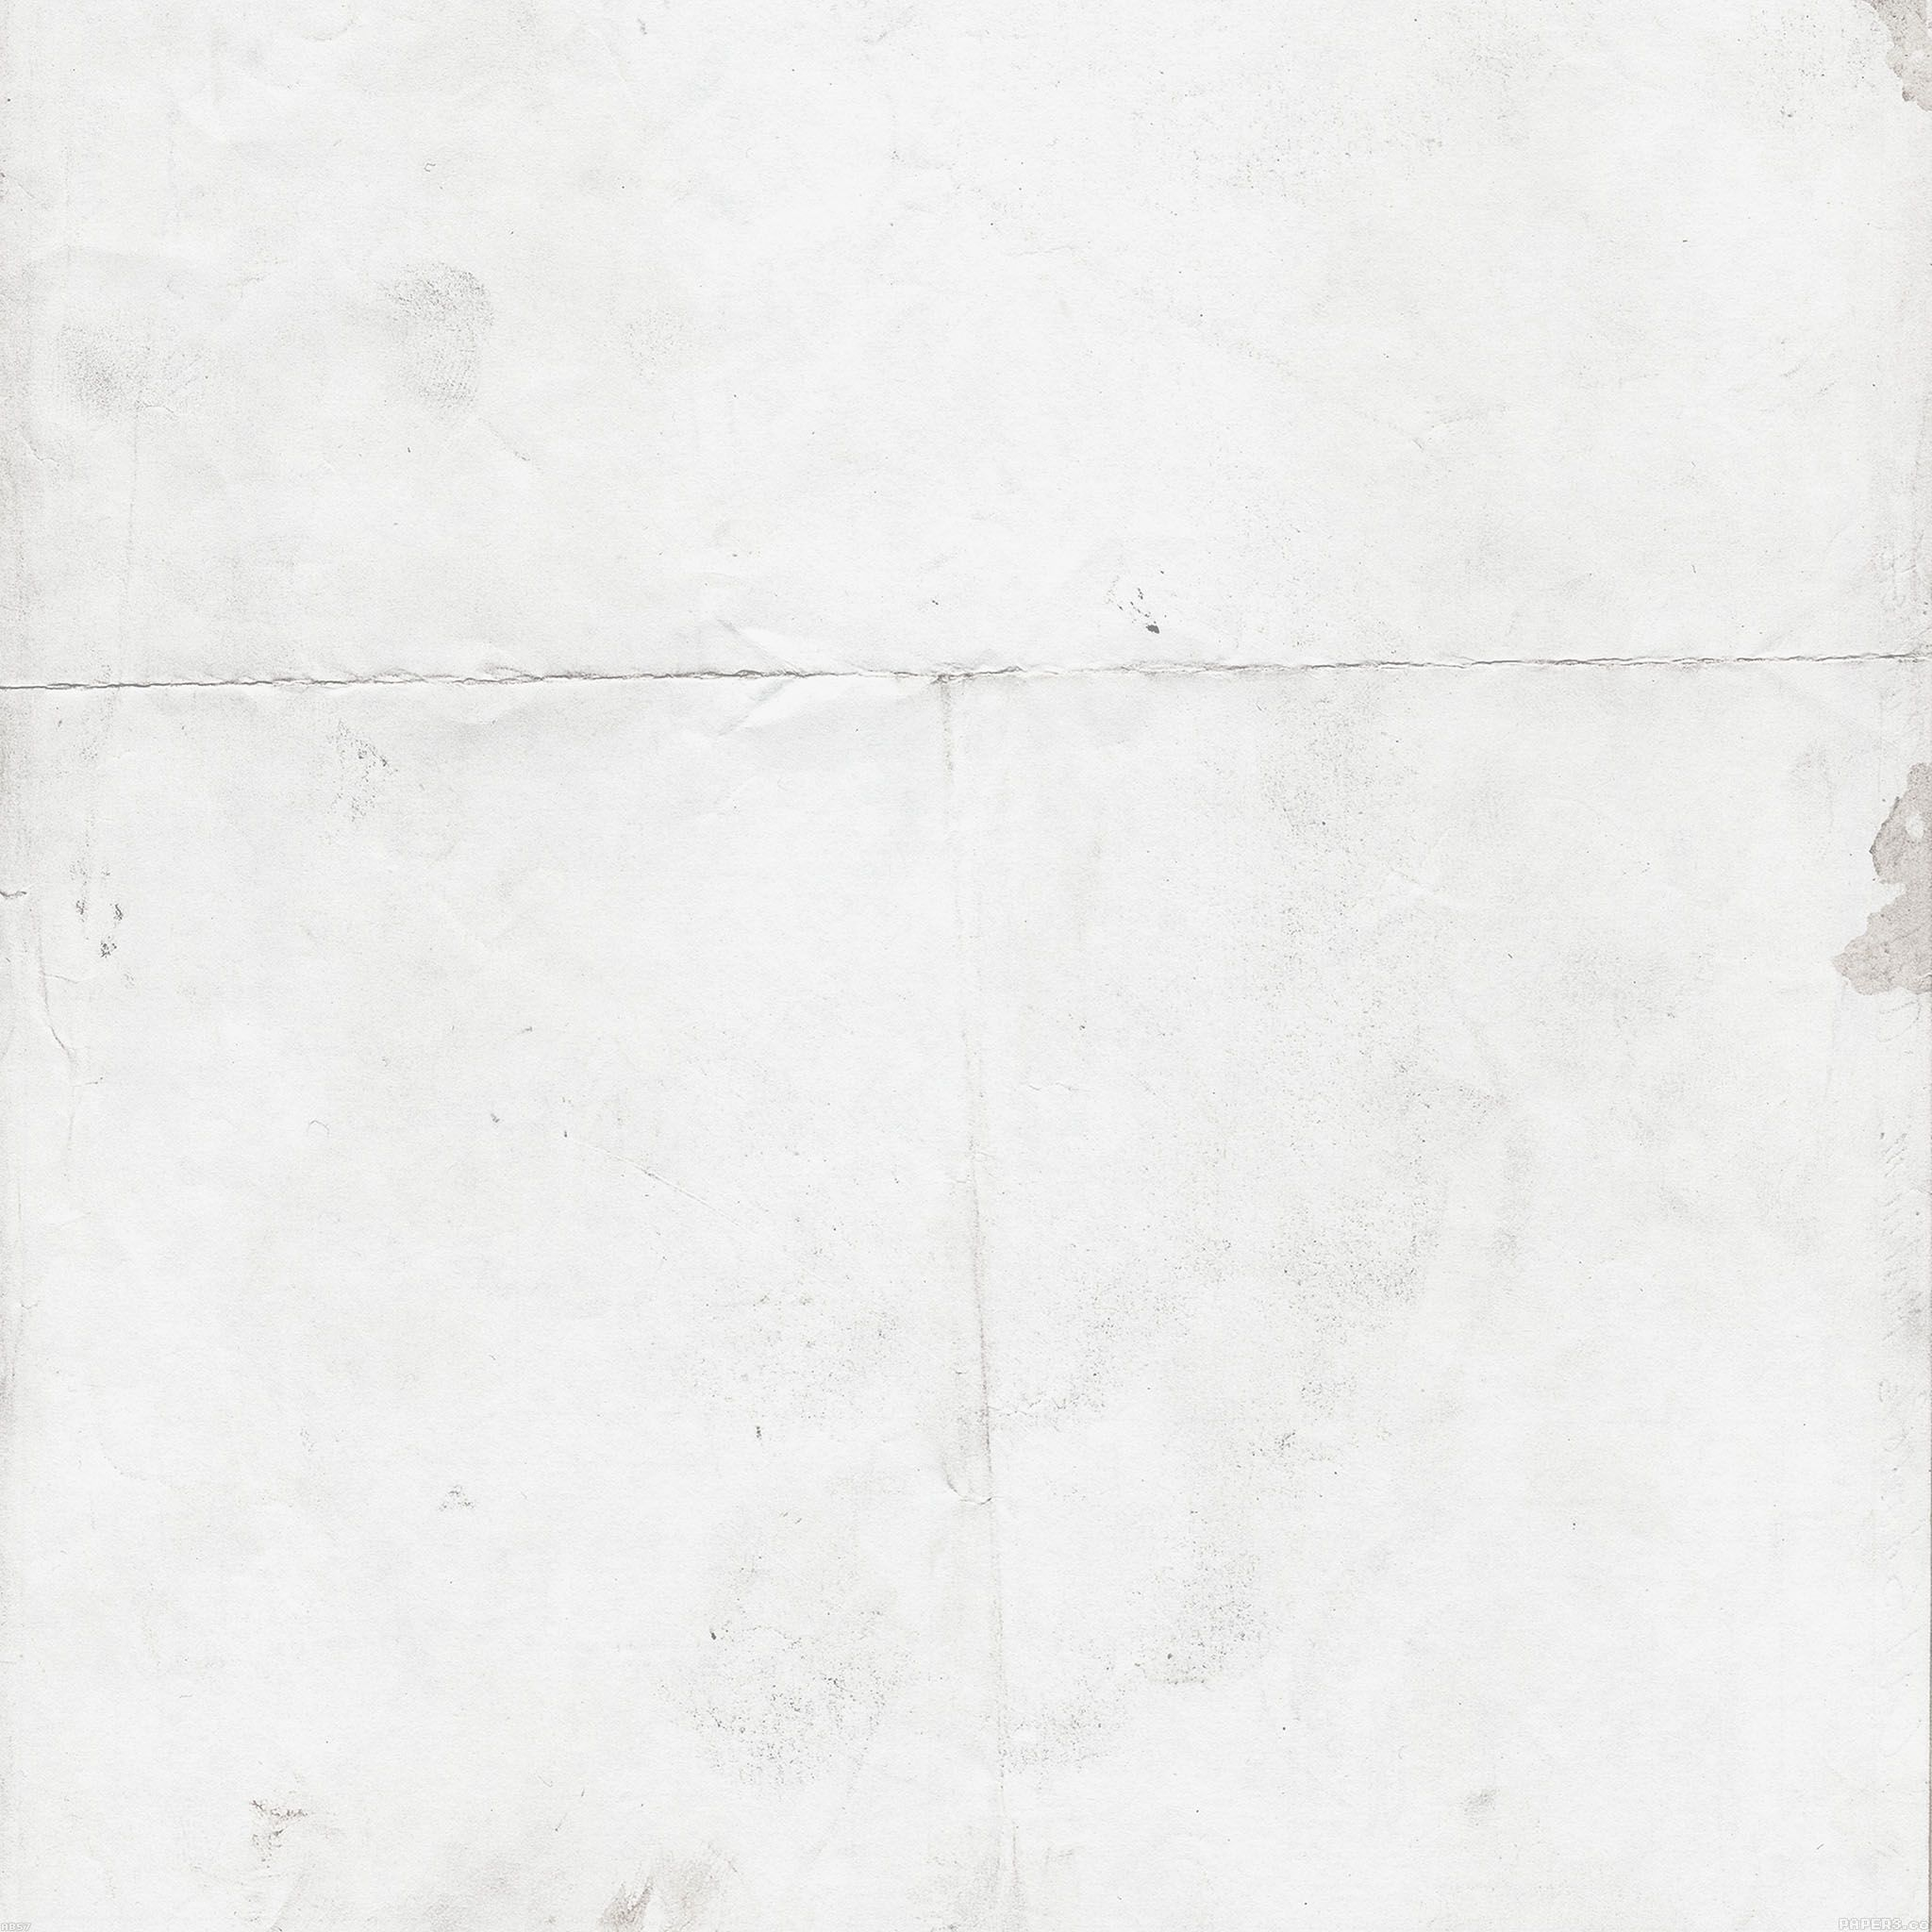 2048x2048 ab57-wallpaper-grunge-paper-texture-white - Papers.co